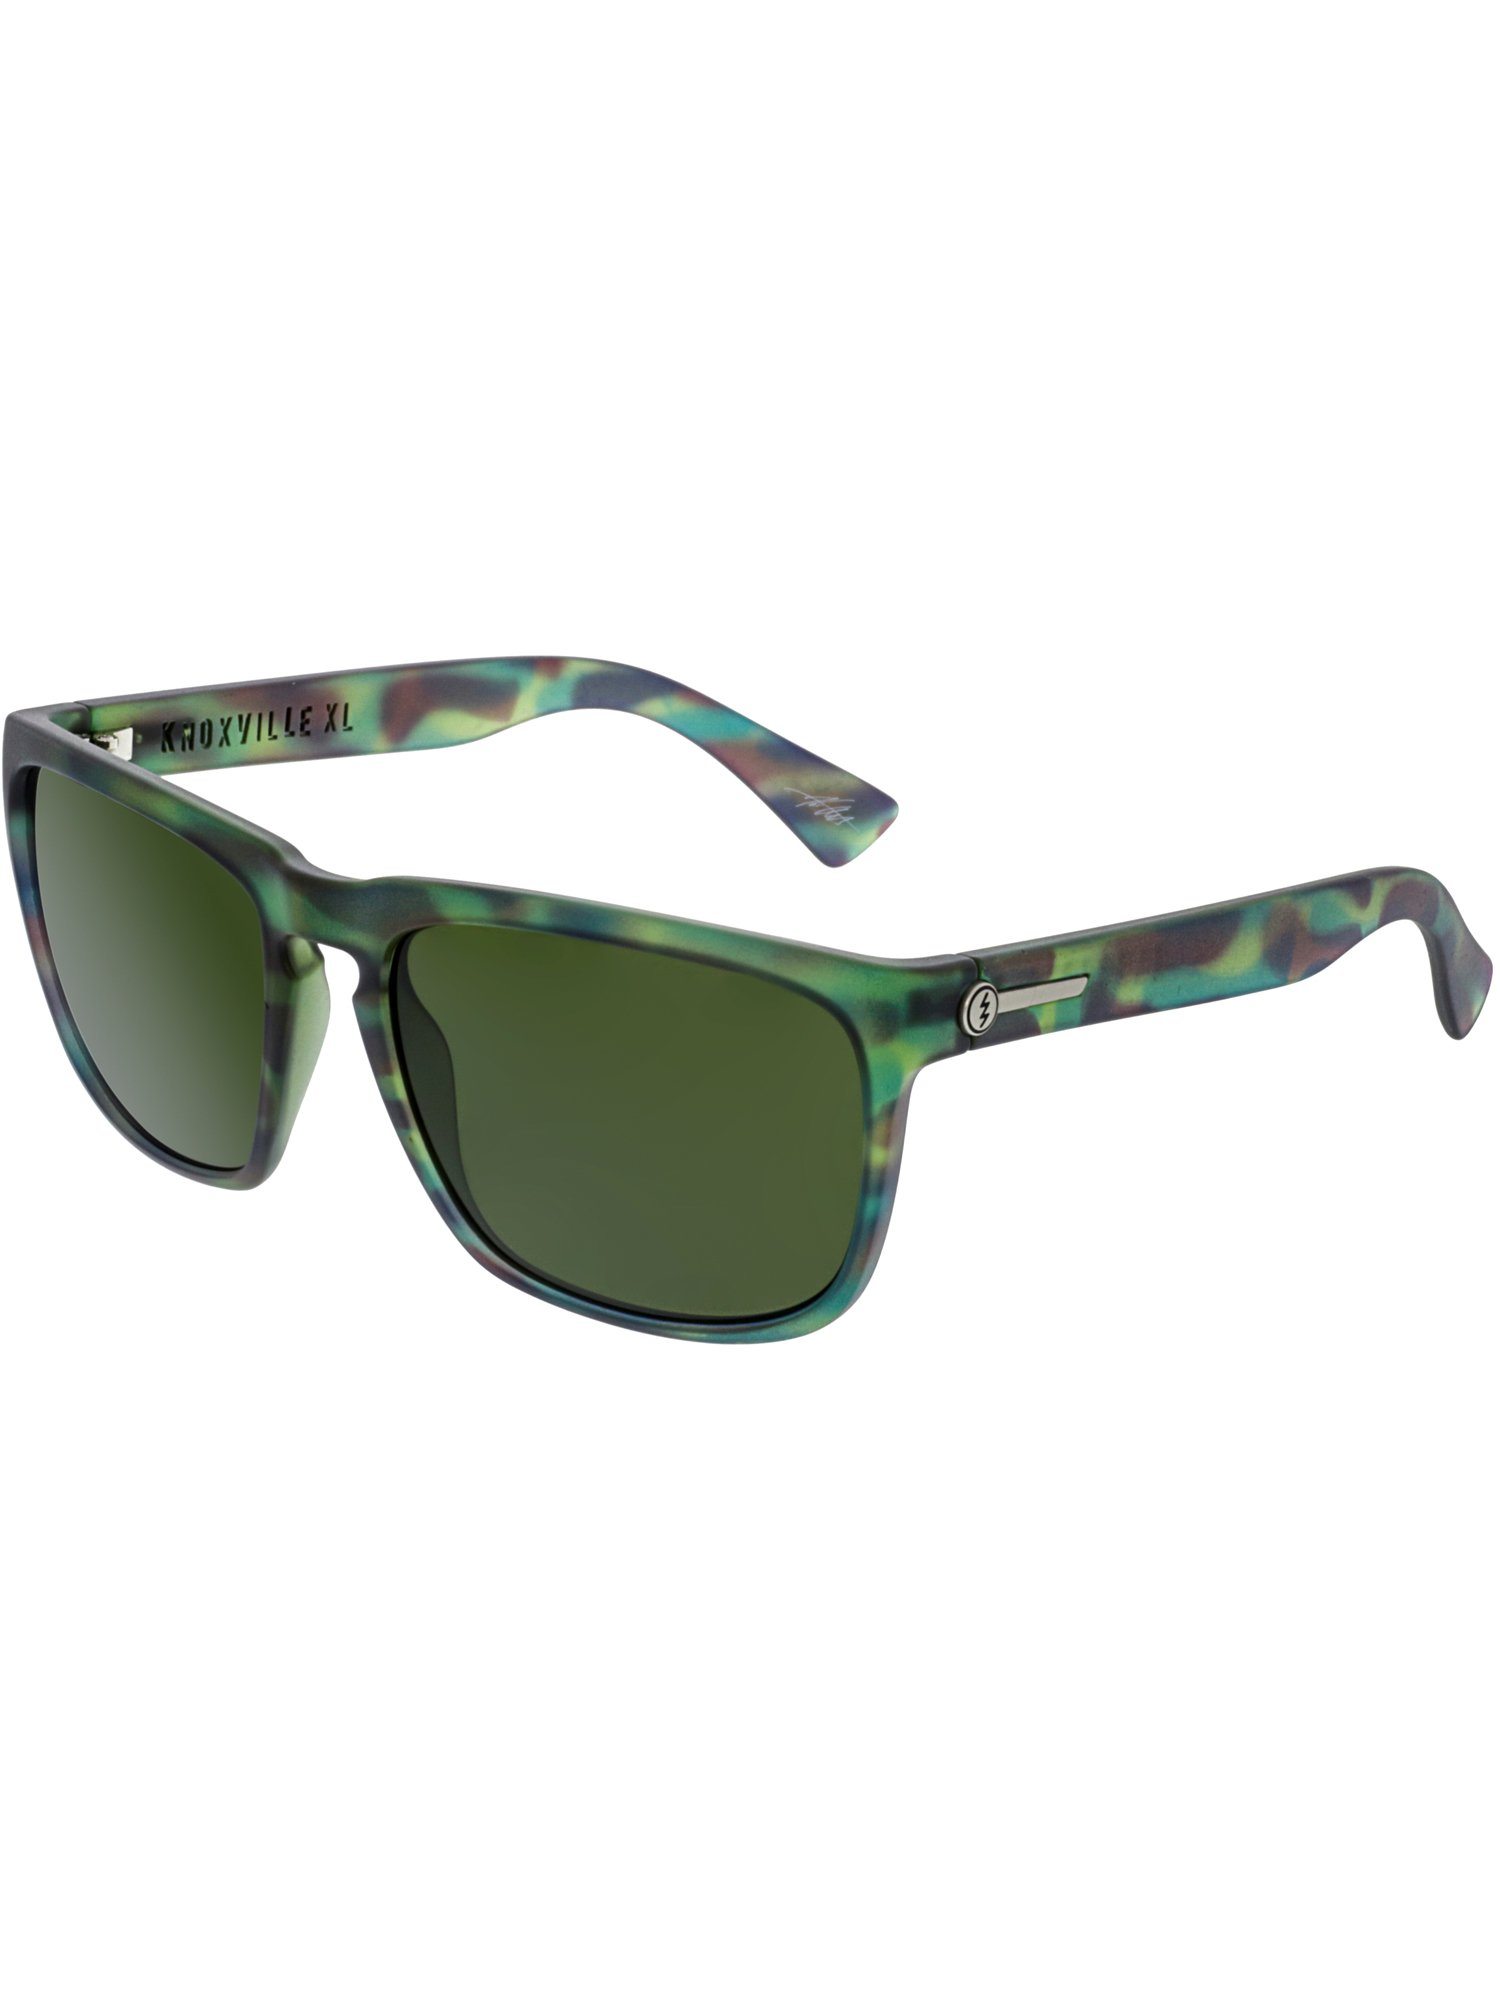 1a8565eab9 Electric Knoxville Xl Polarized Sunglasses - Image Of Glasses